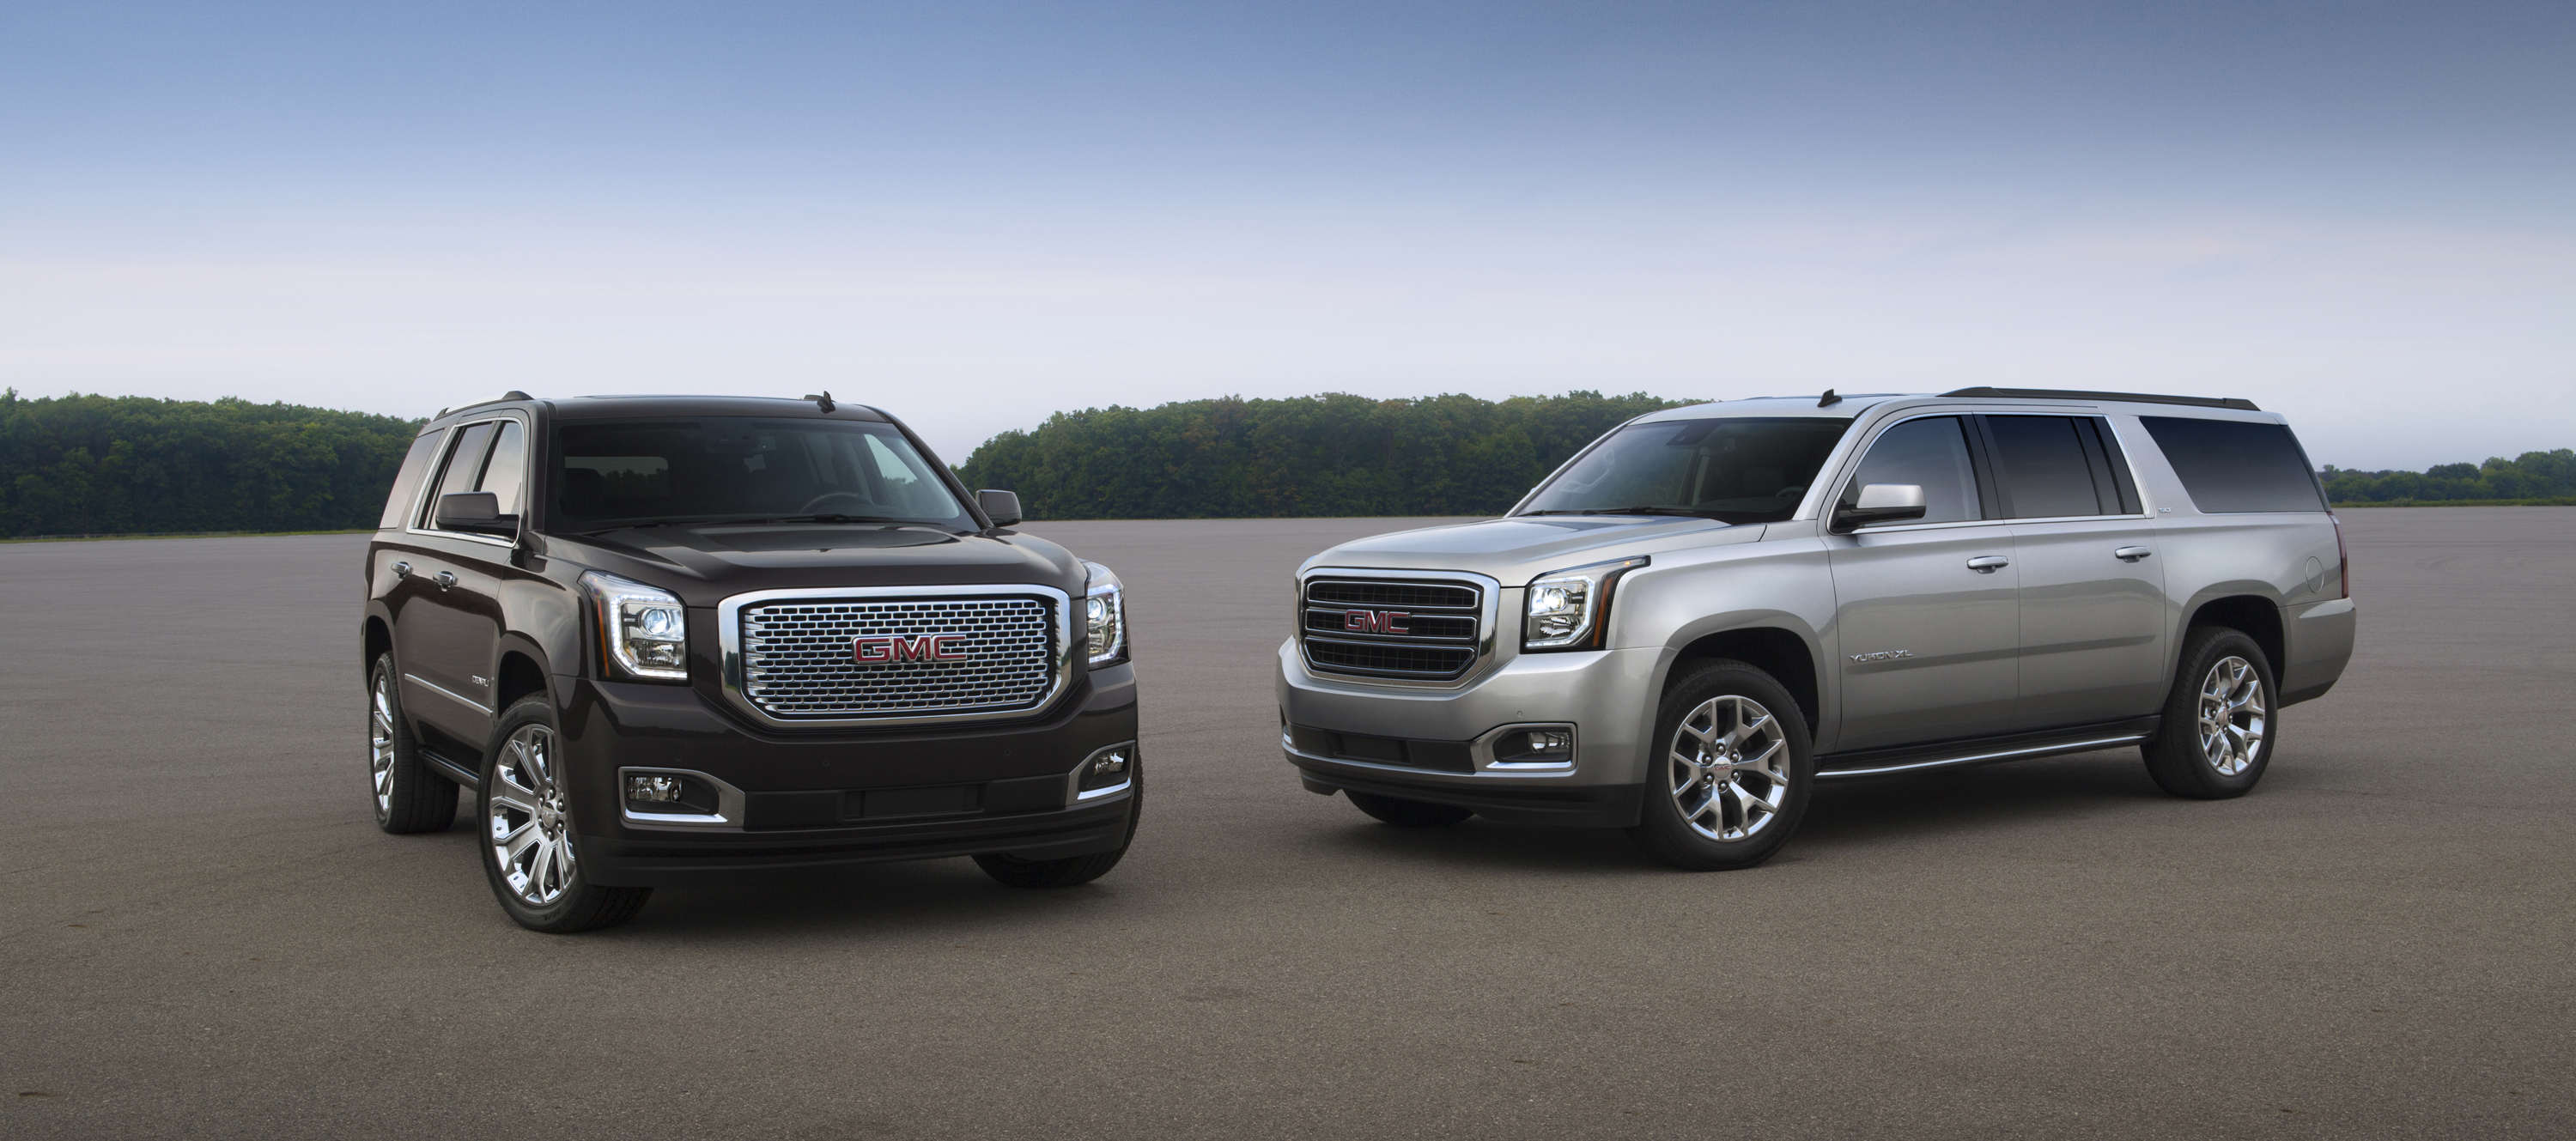 Stronger Chassis Enhanced Body Structure Contribute To Greater Comfort Quietness In 2015 Gmc Yukon Yukon Xl